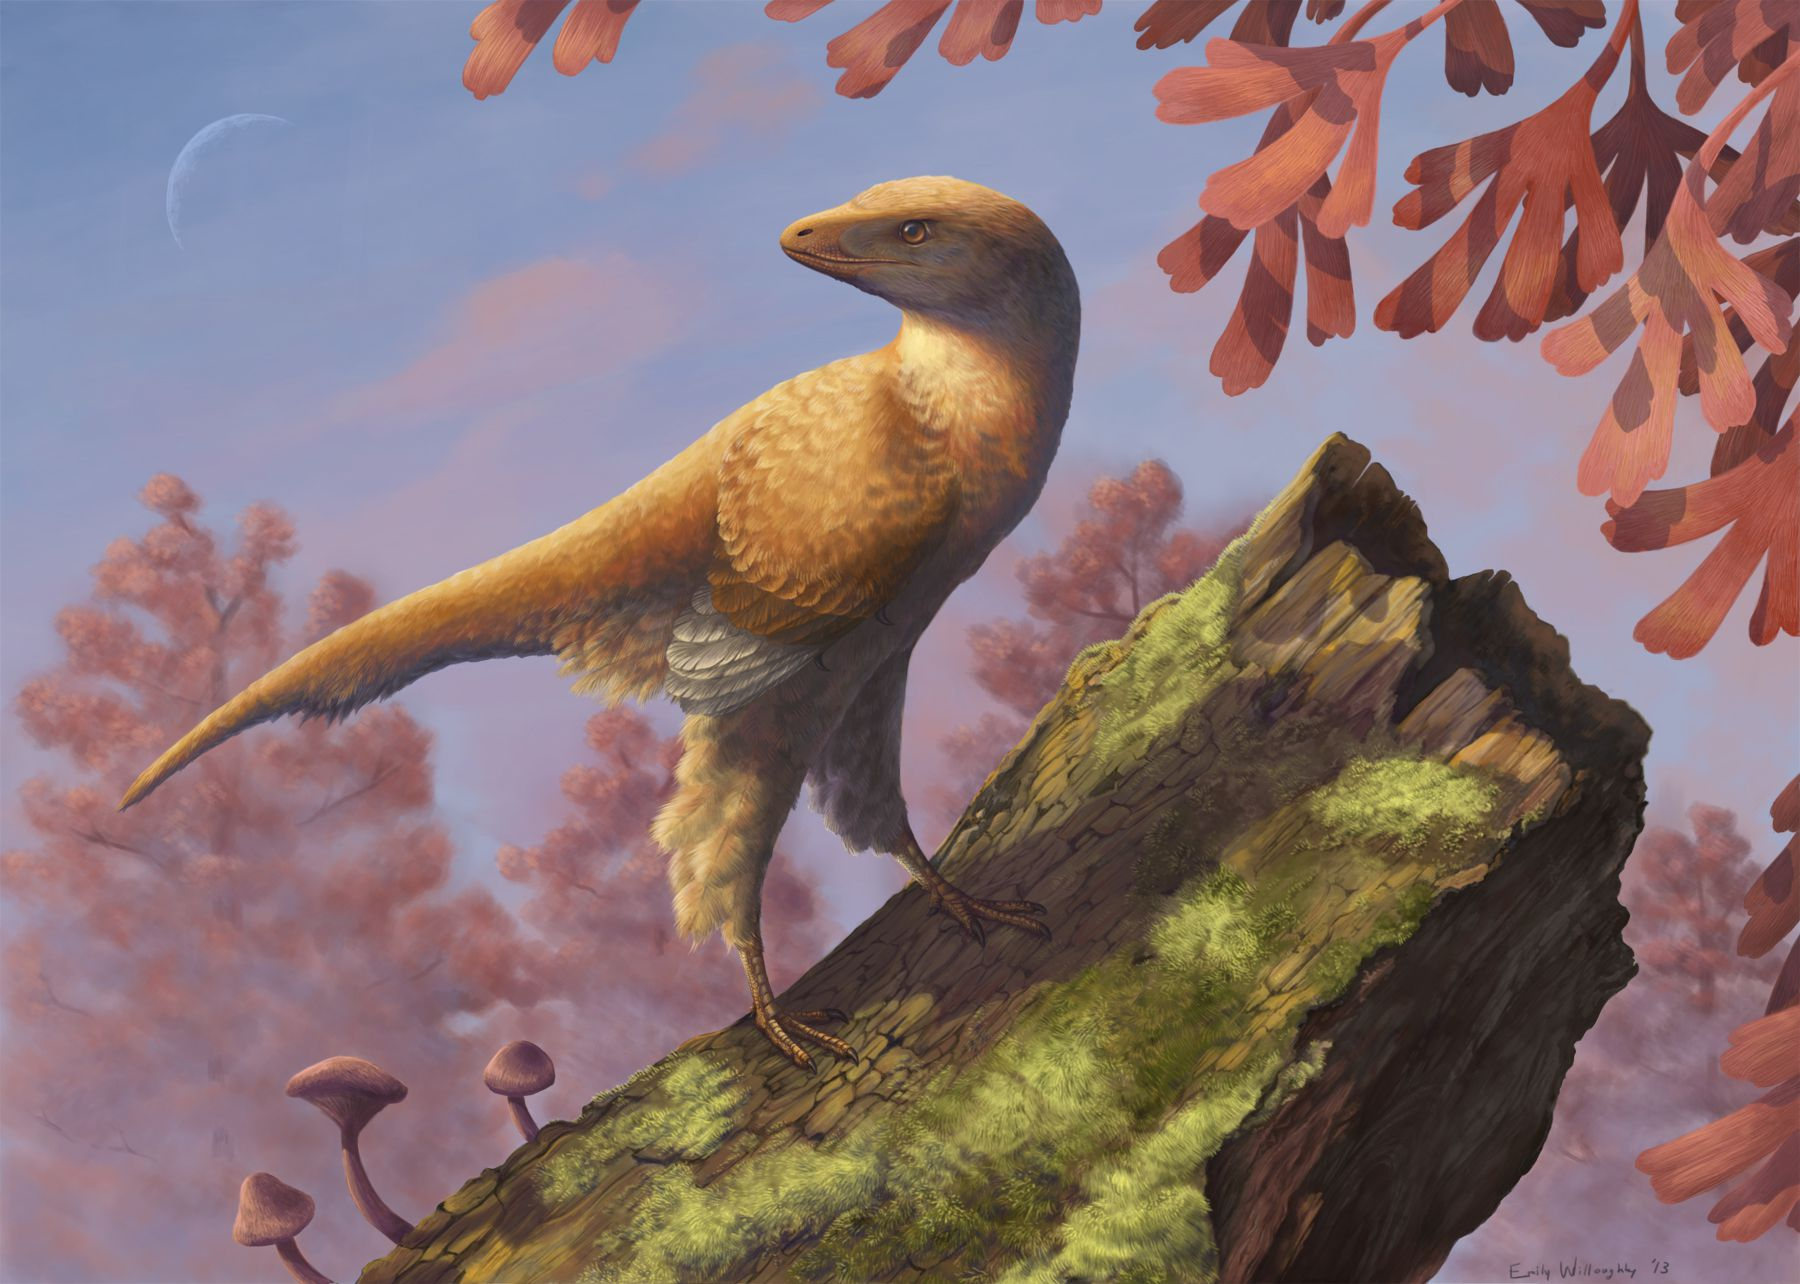 Feathered dinosaurs birds